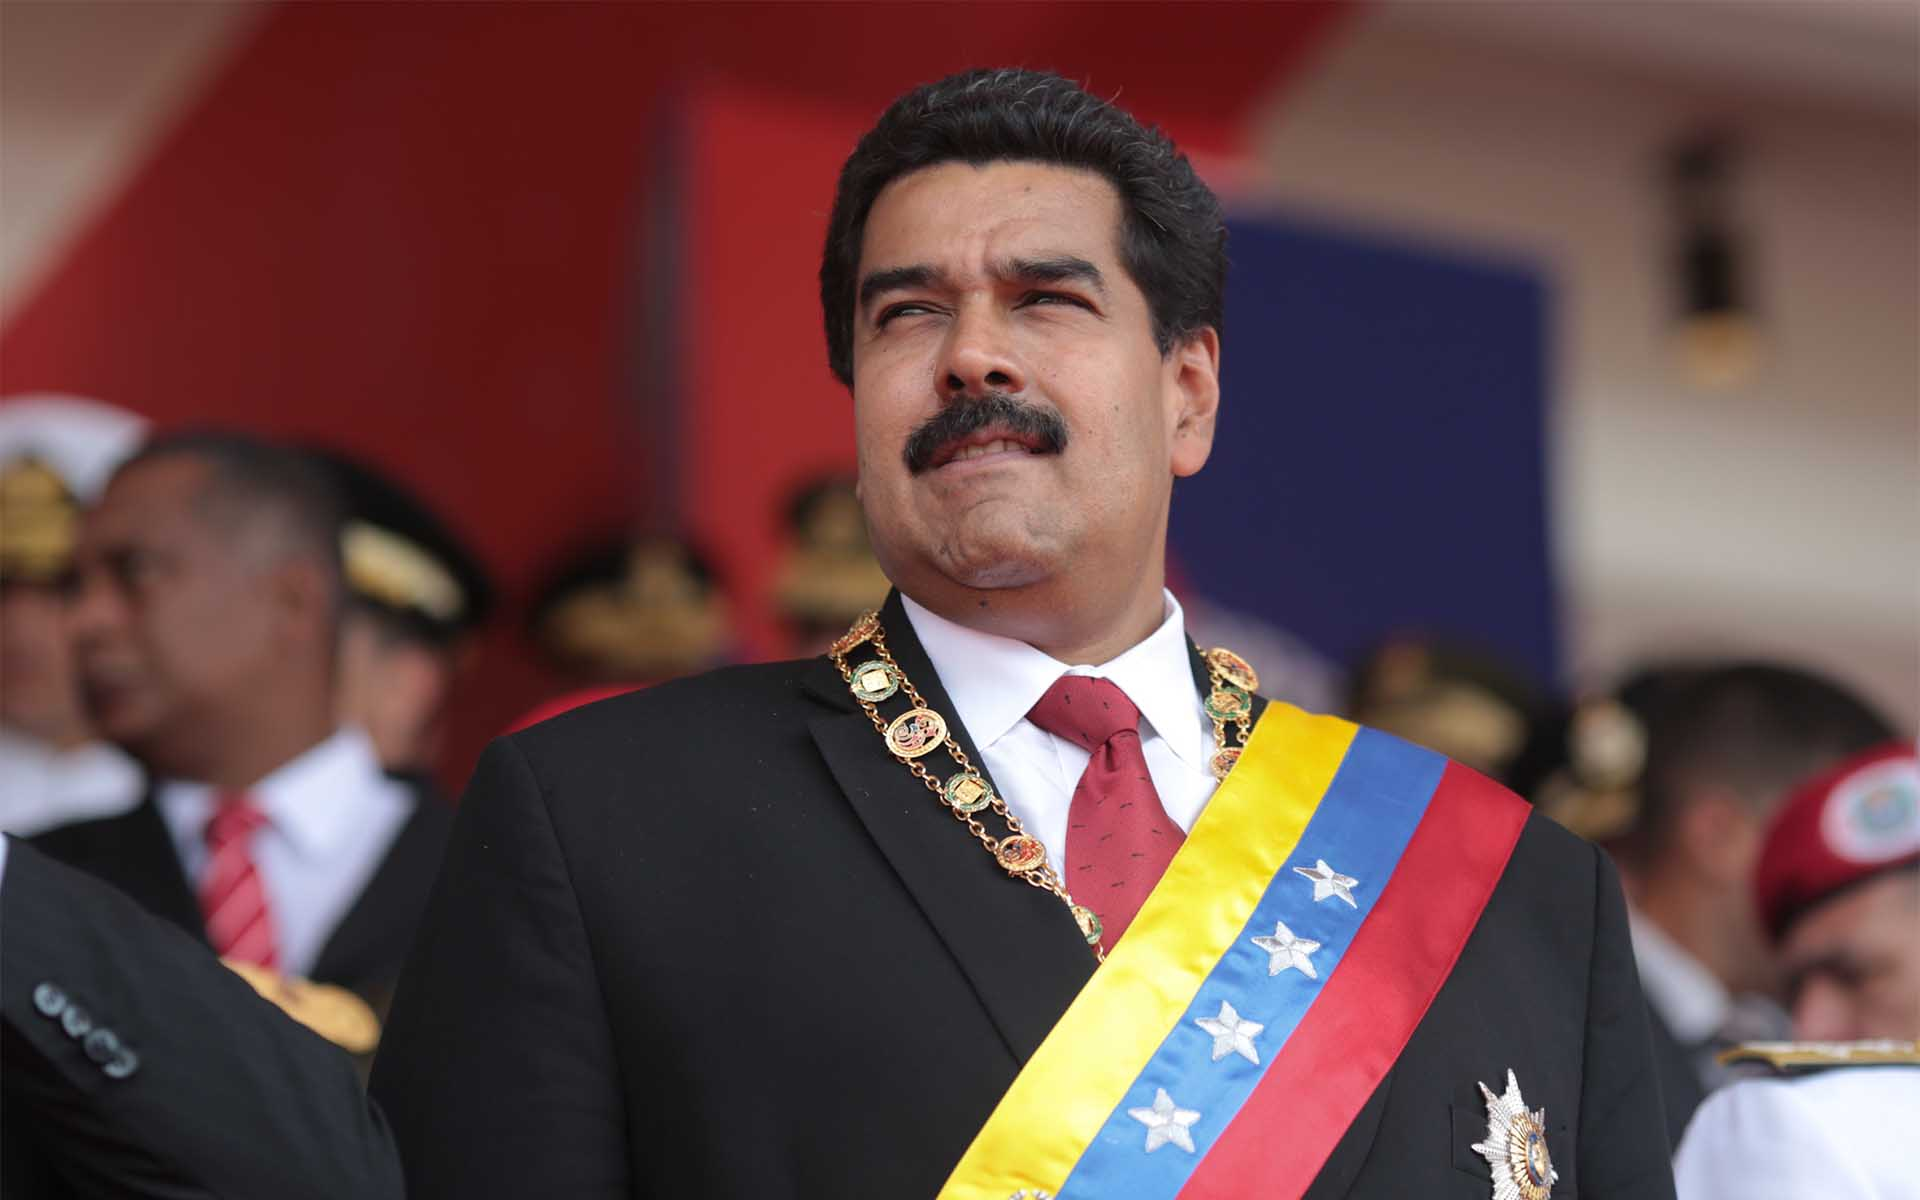 Maduro's cryptocurrency 'genius' once pushed U.S. sanctions